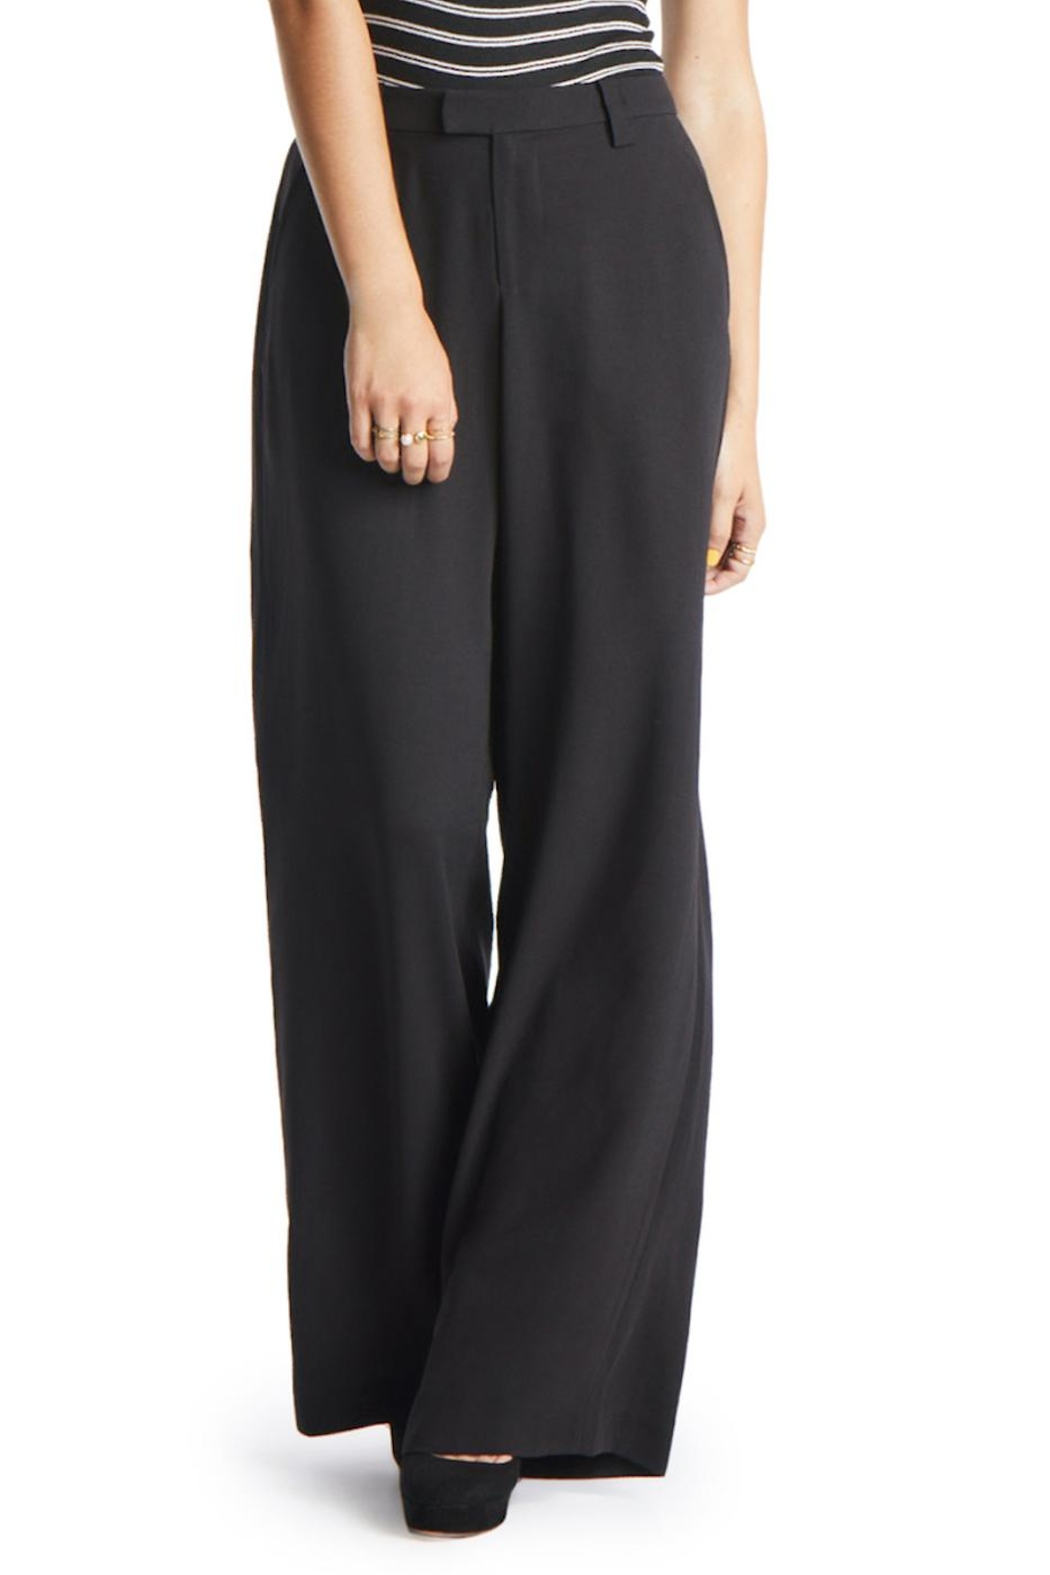 TAGS Wide Legged Trousers - Main Image